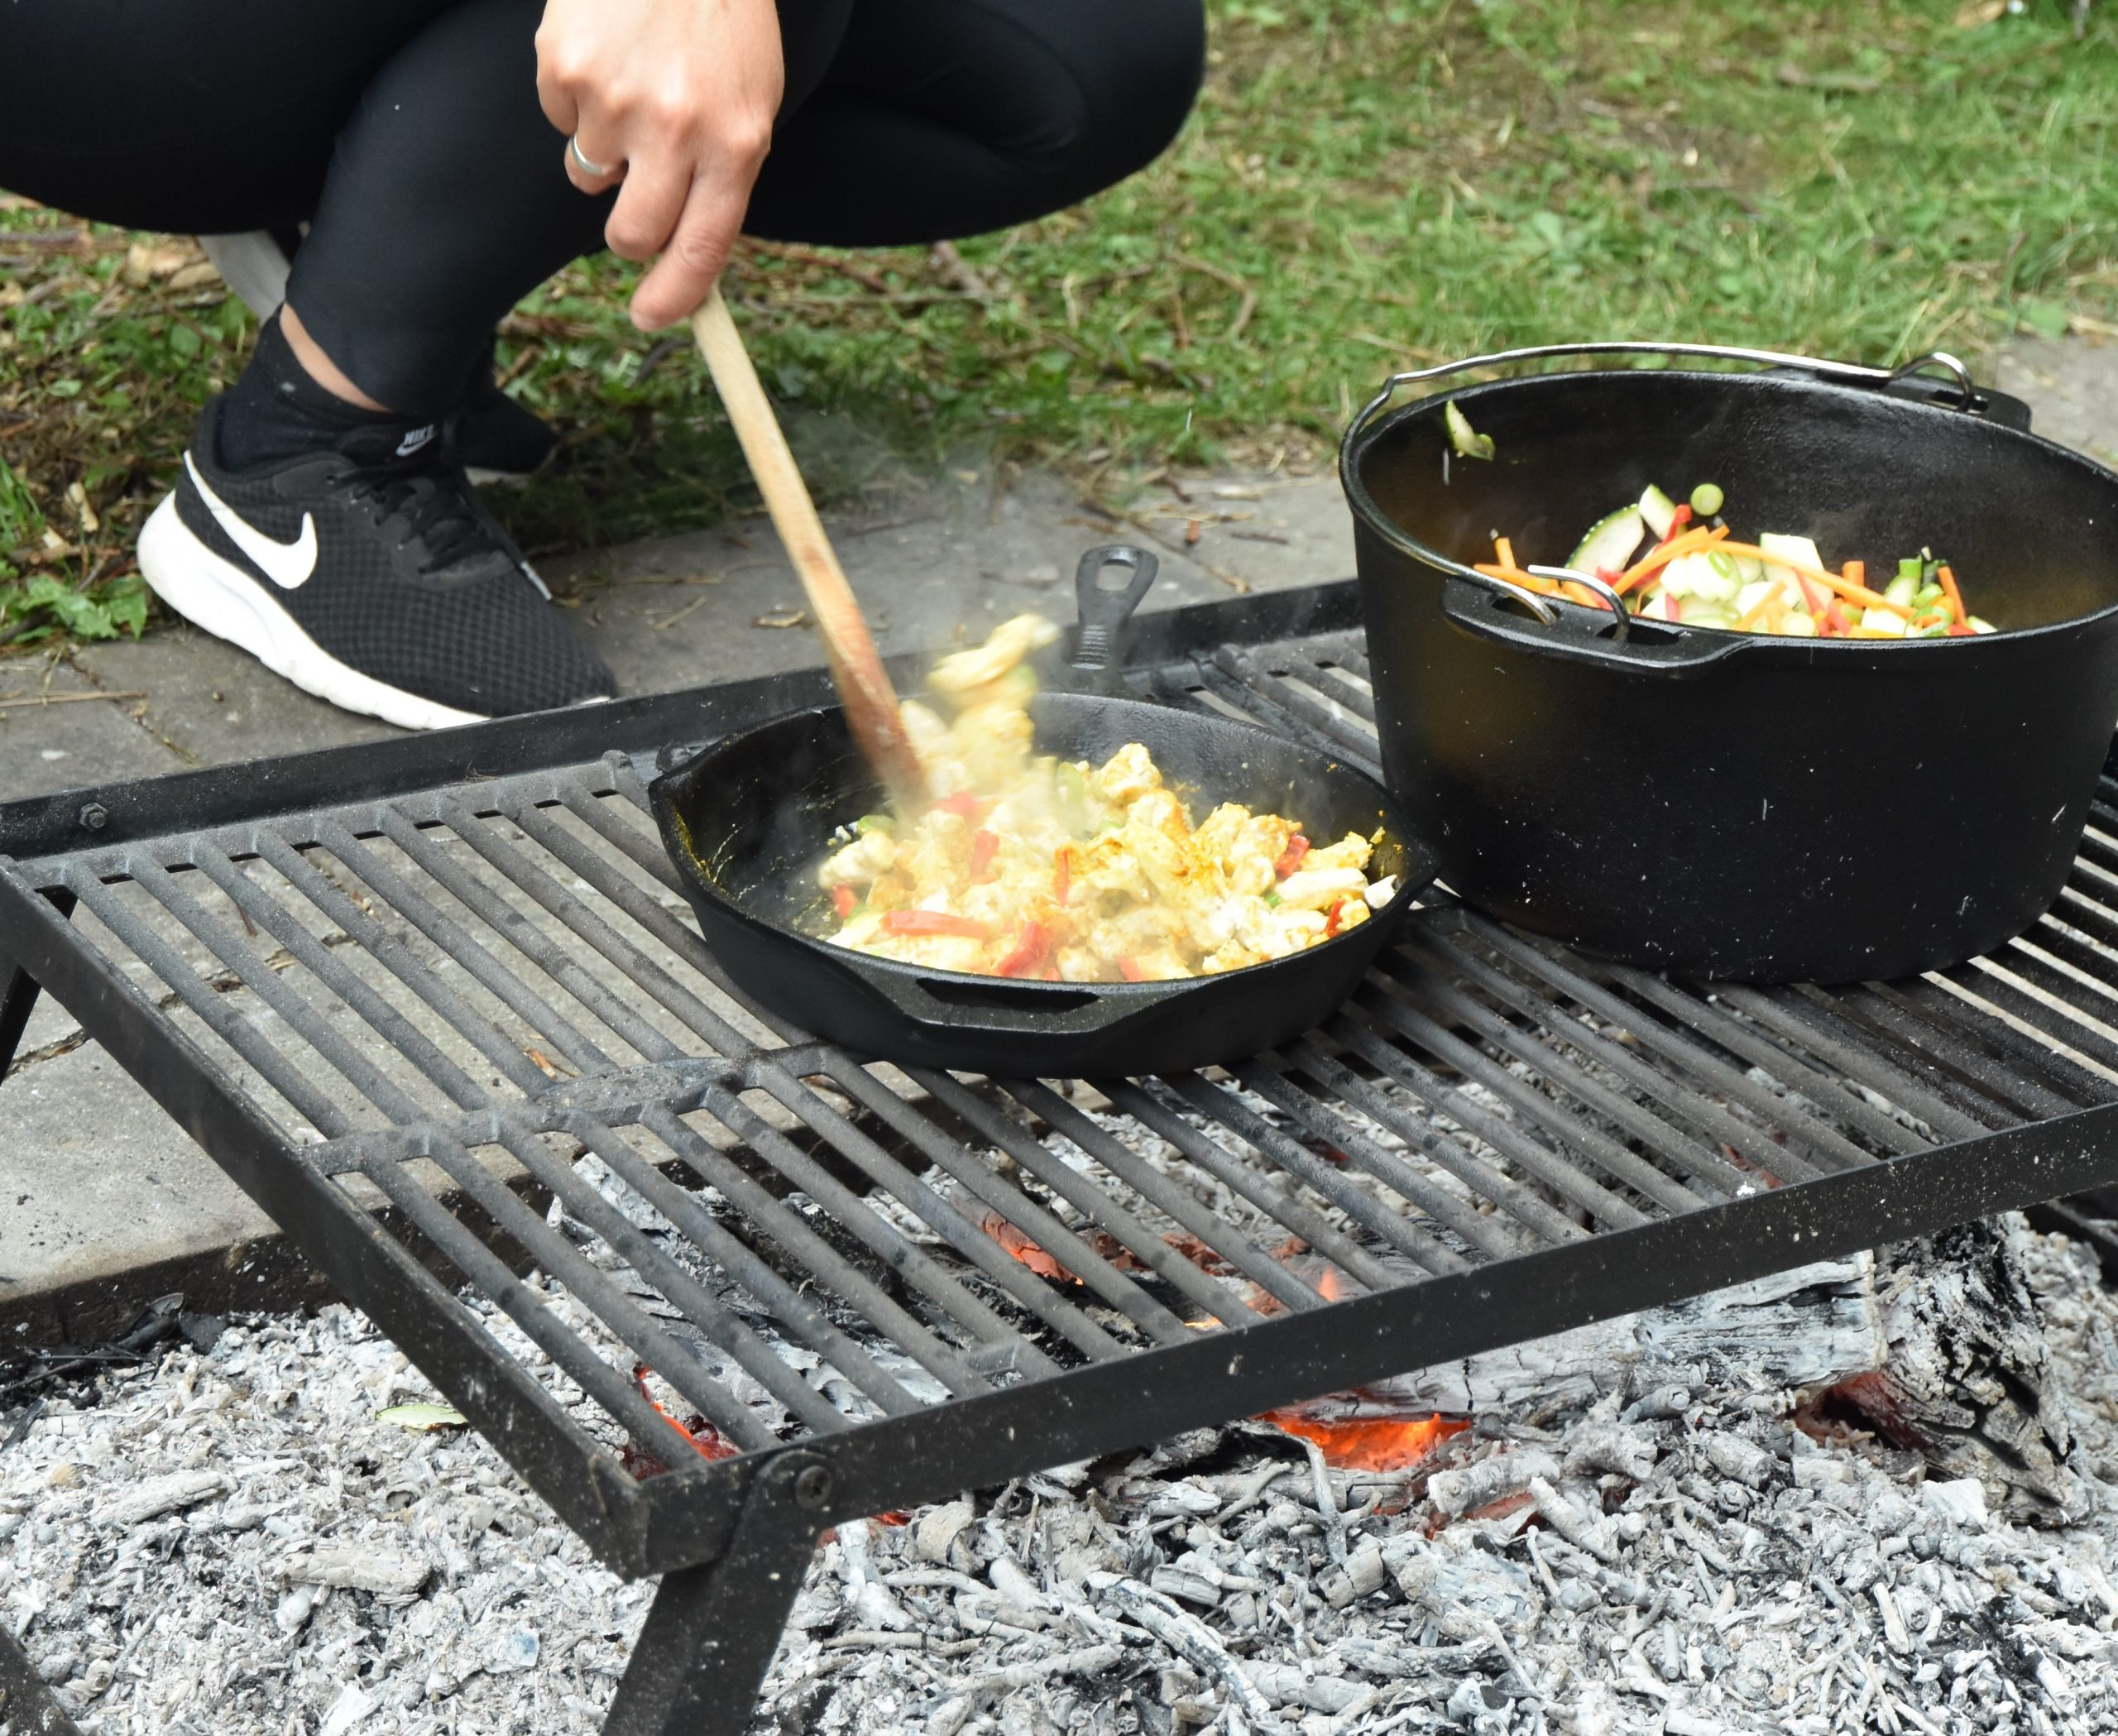 Bon-fire Grill with grill grids of cast iron plus Bon-fire cast iron Saucepan and Stew pot. Photo credit: @seatroutguidefyn